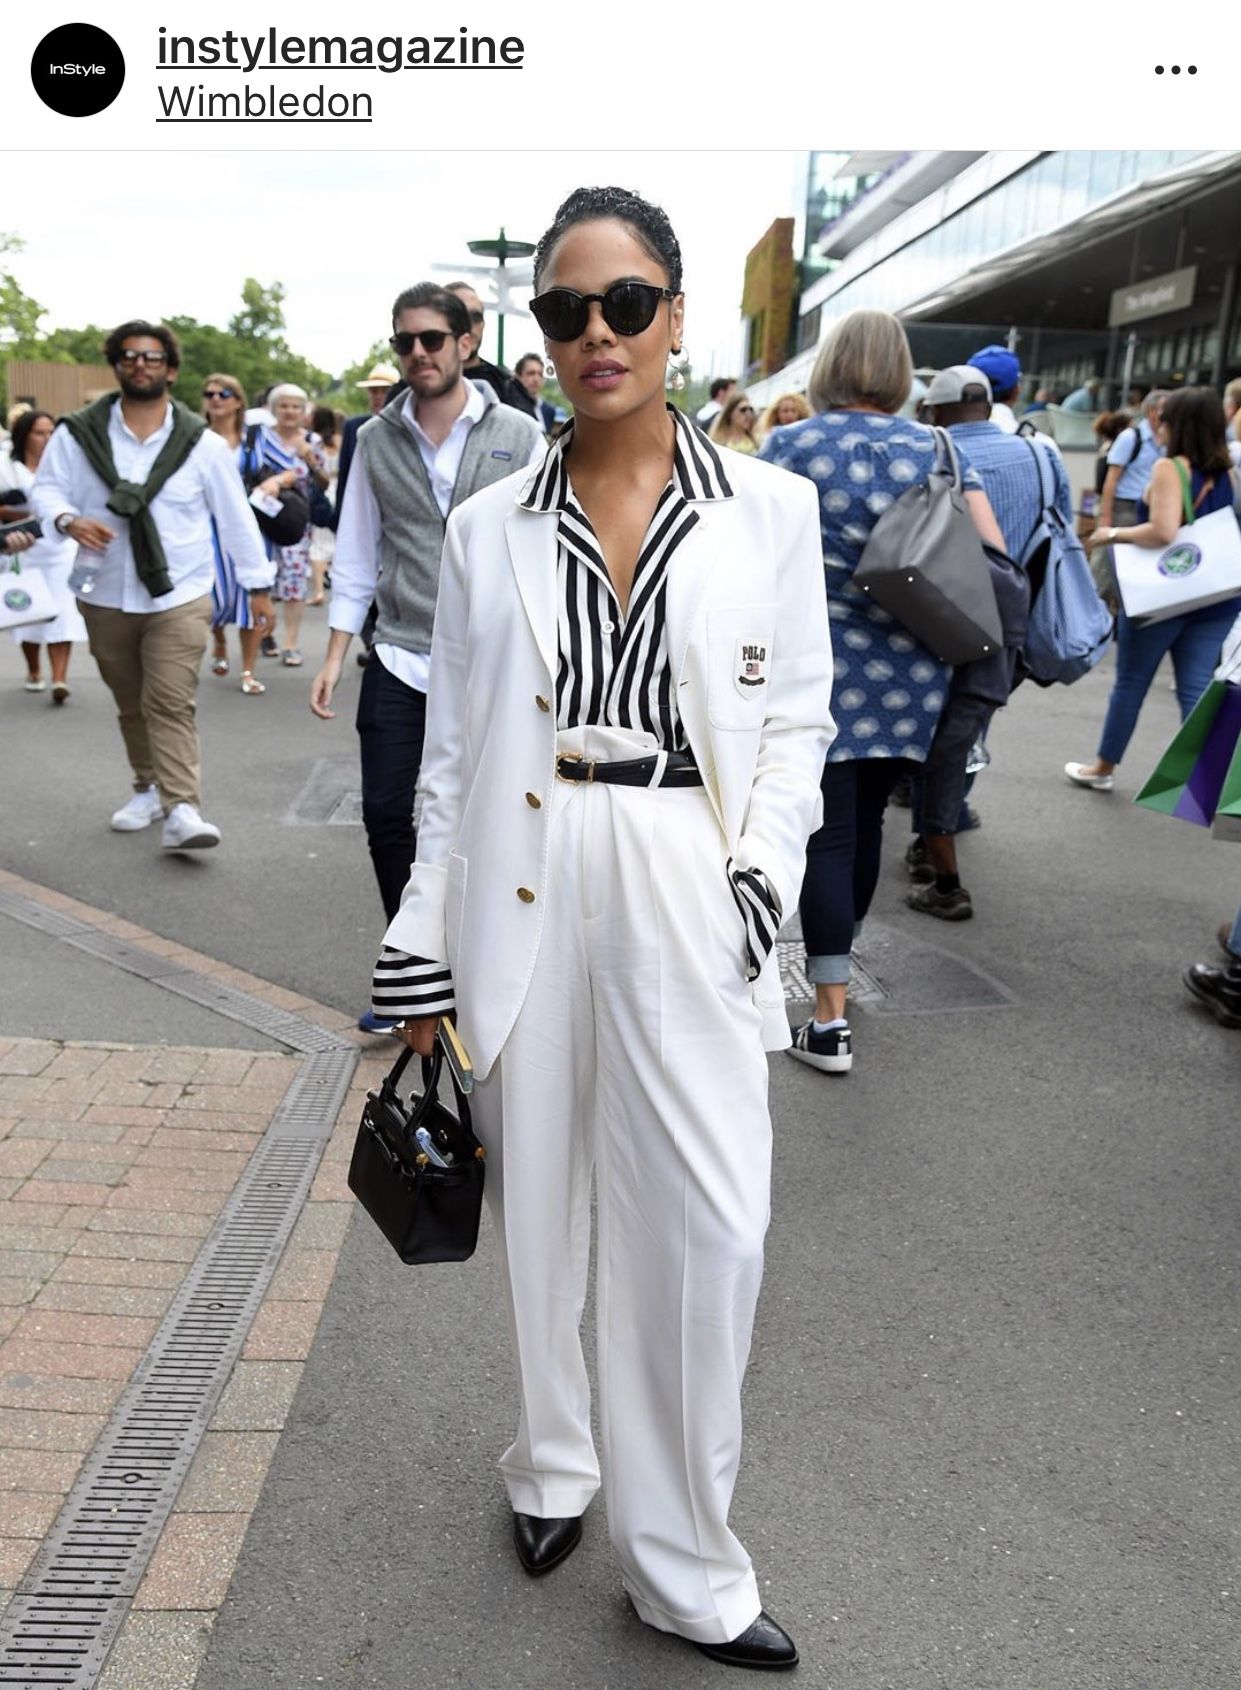 Tessa-Thompson-at-Wimbledon-.jpg